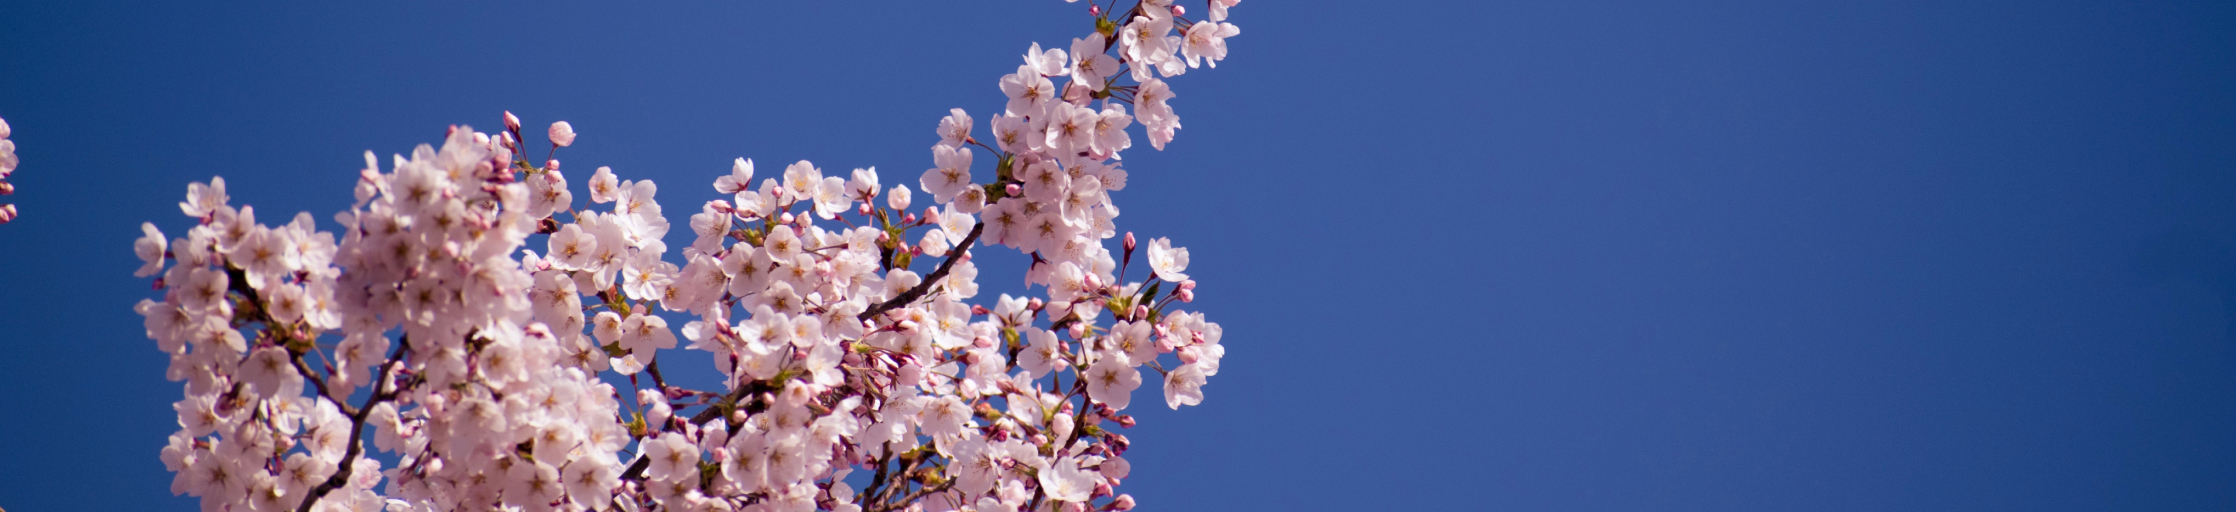 cherry blossoms in the sky